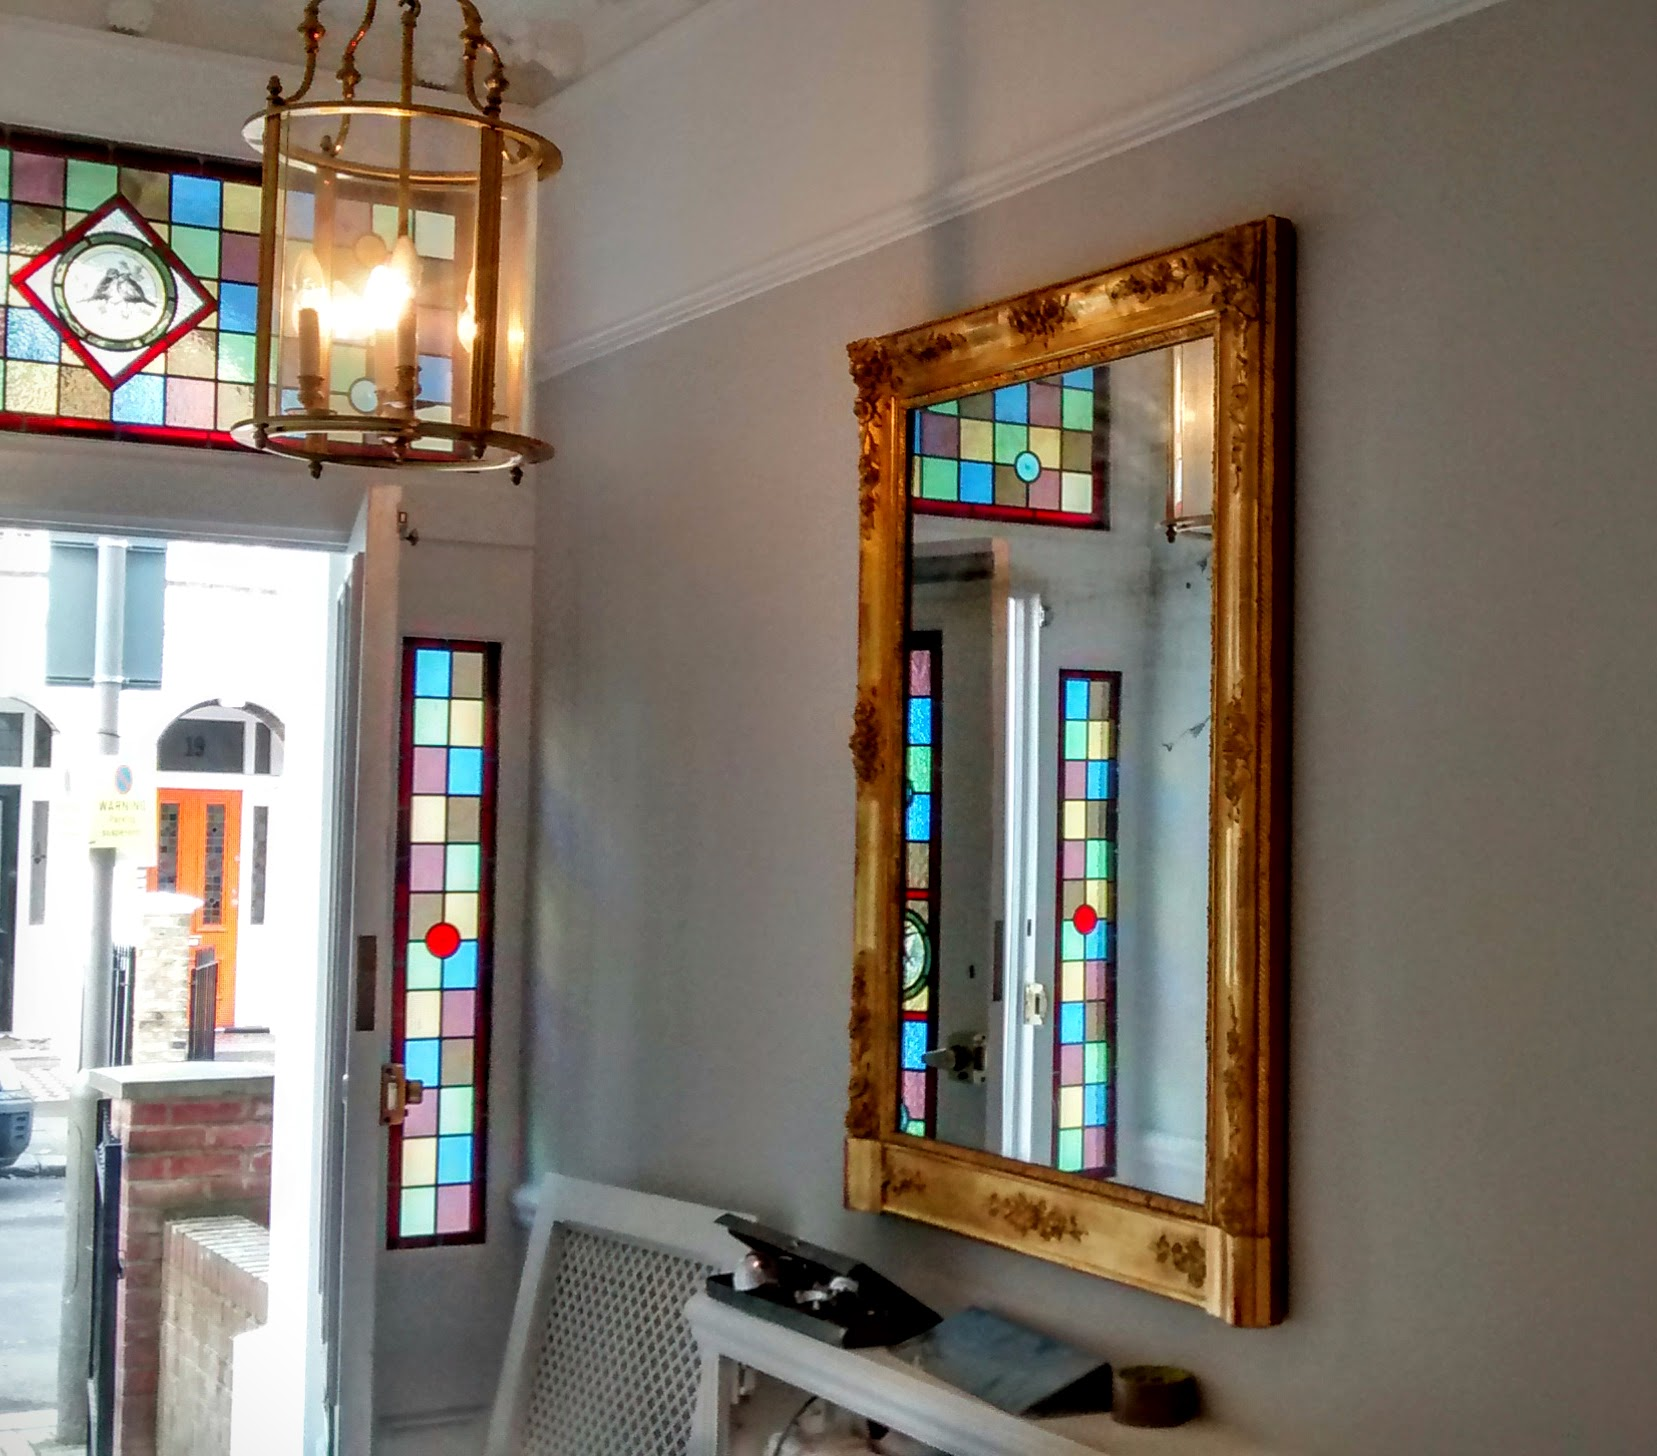 A gold decorated mirror hung in the hallway entrance of a home in Tunbridge Wells.